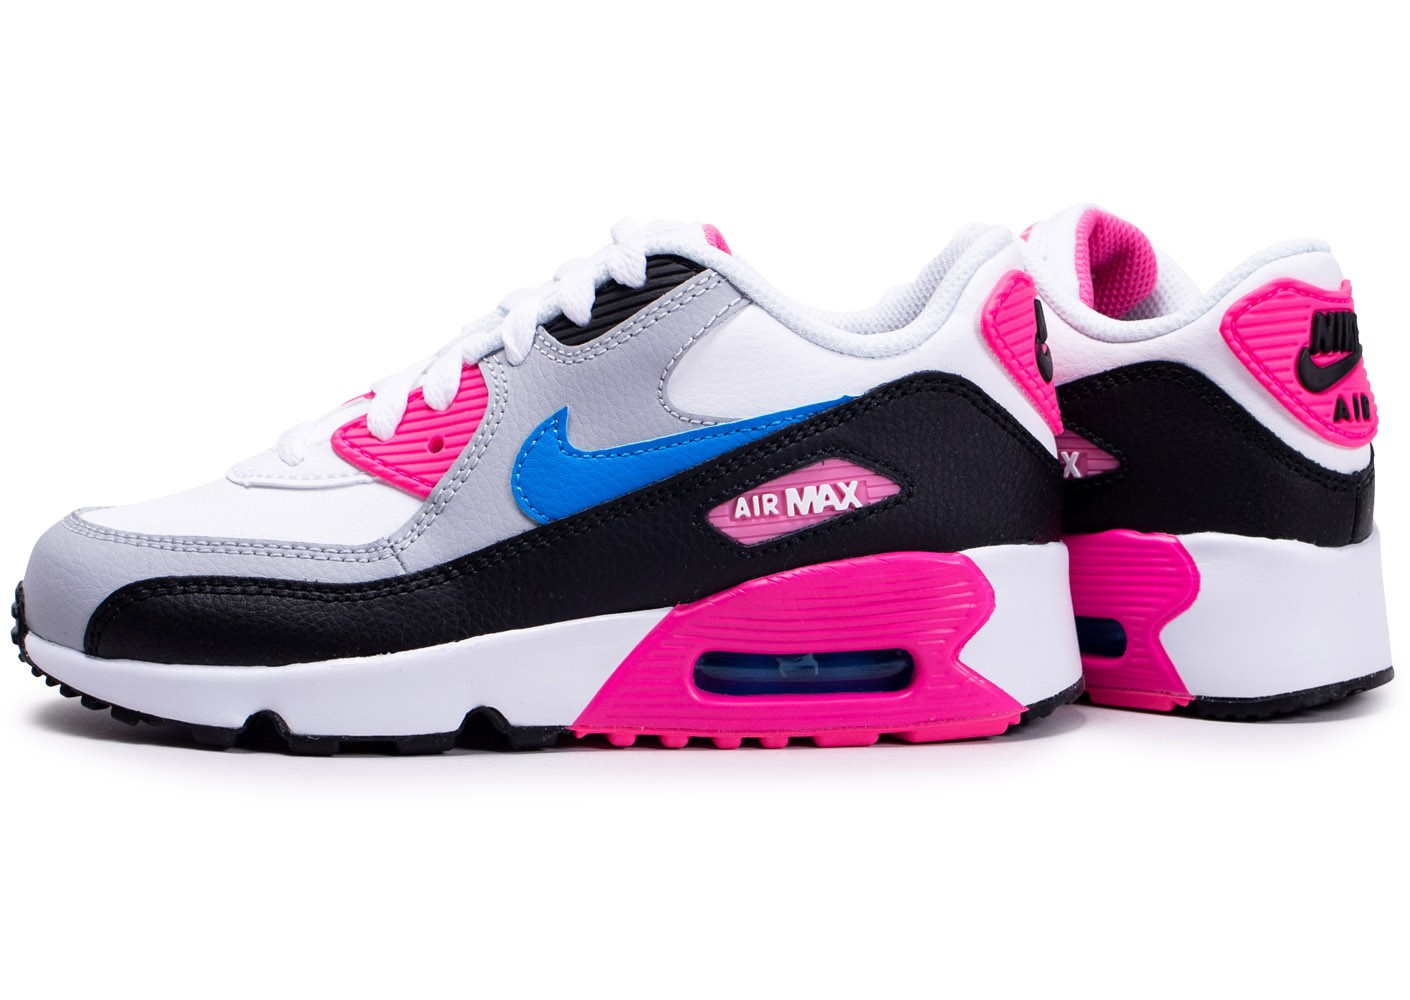 Nike Air Max 90 Leather blanc rose bleu enfant - Chaussures ...